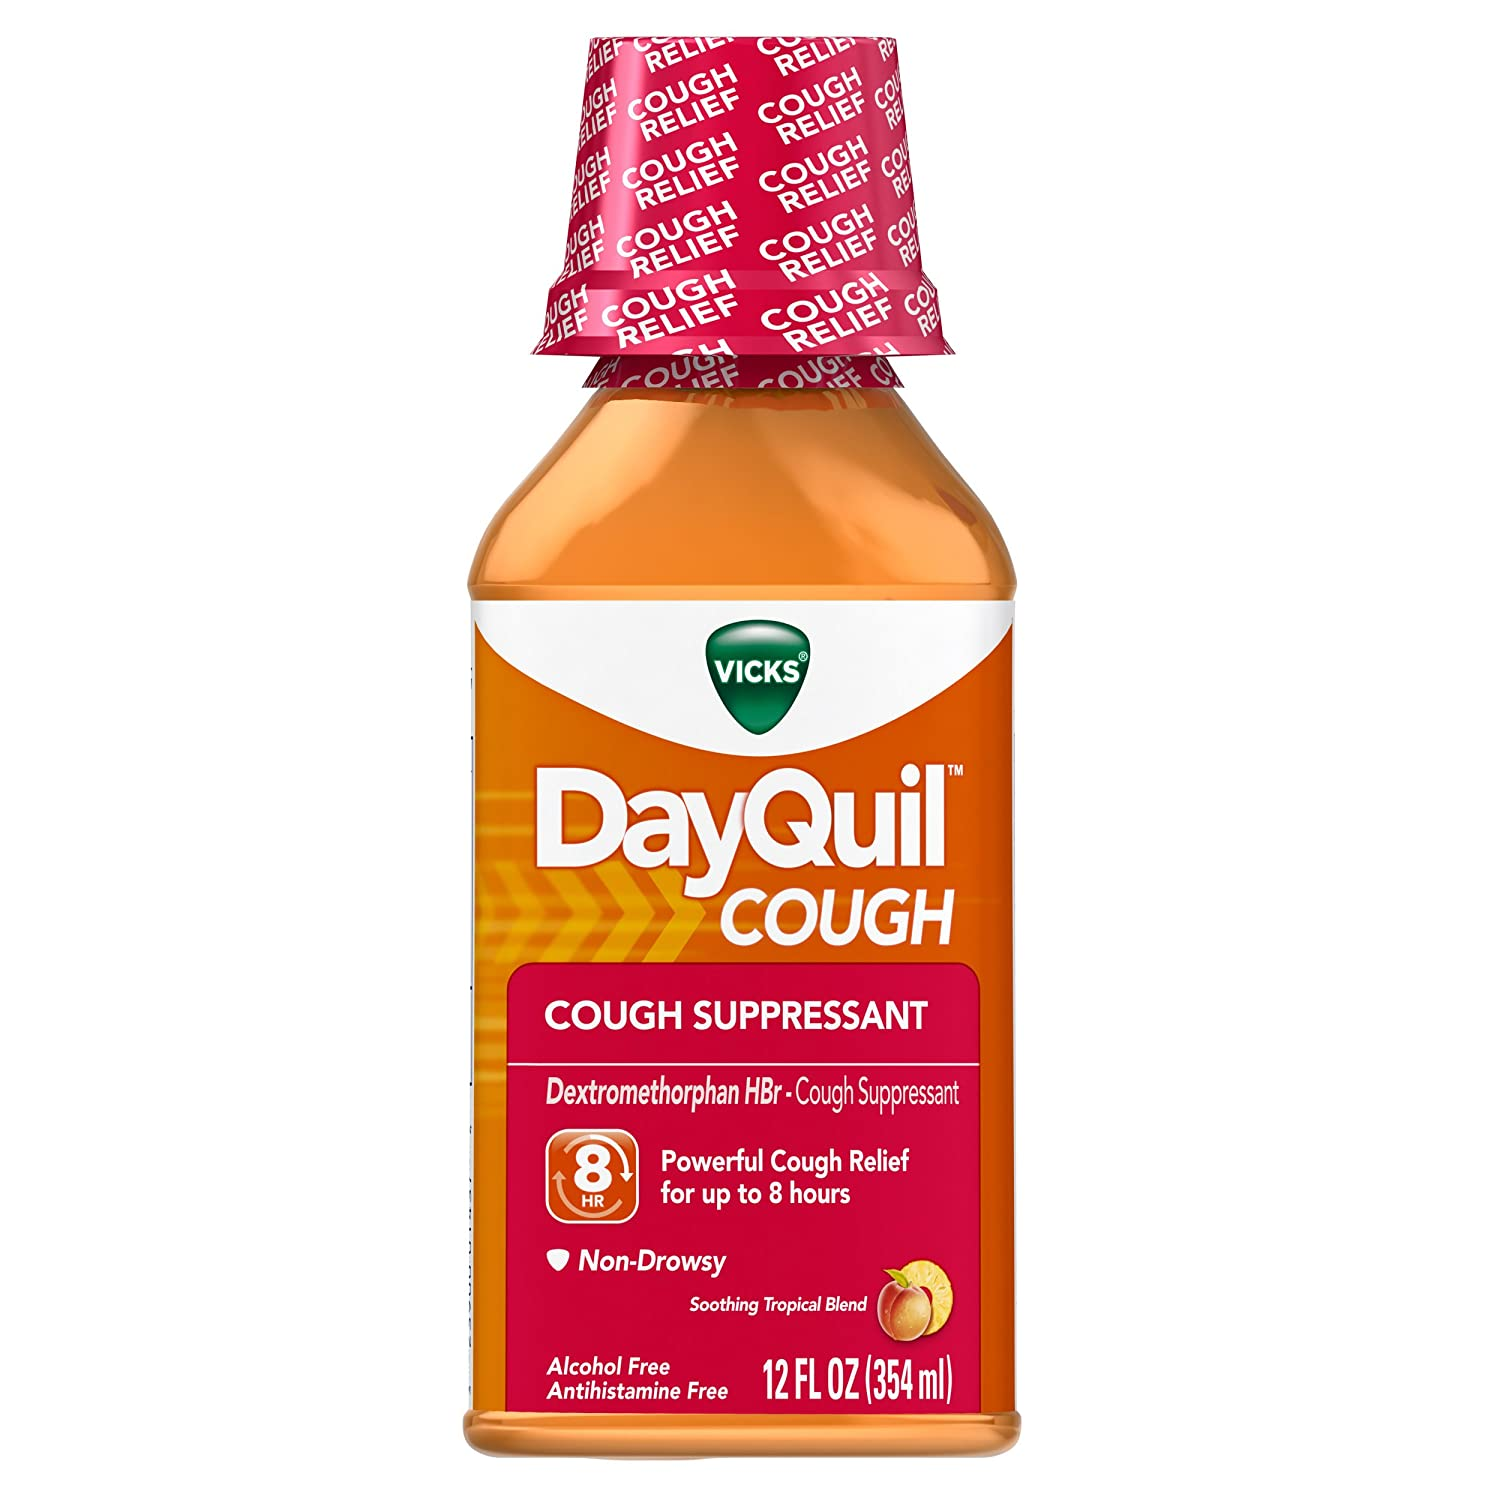 Dayquil Cough Reviews